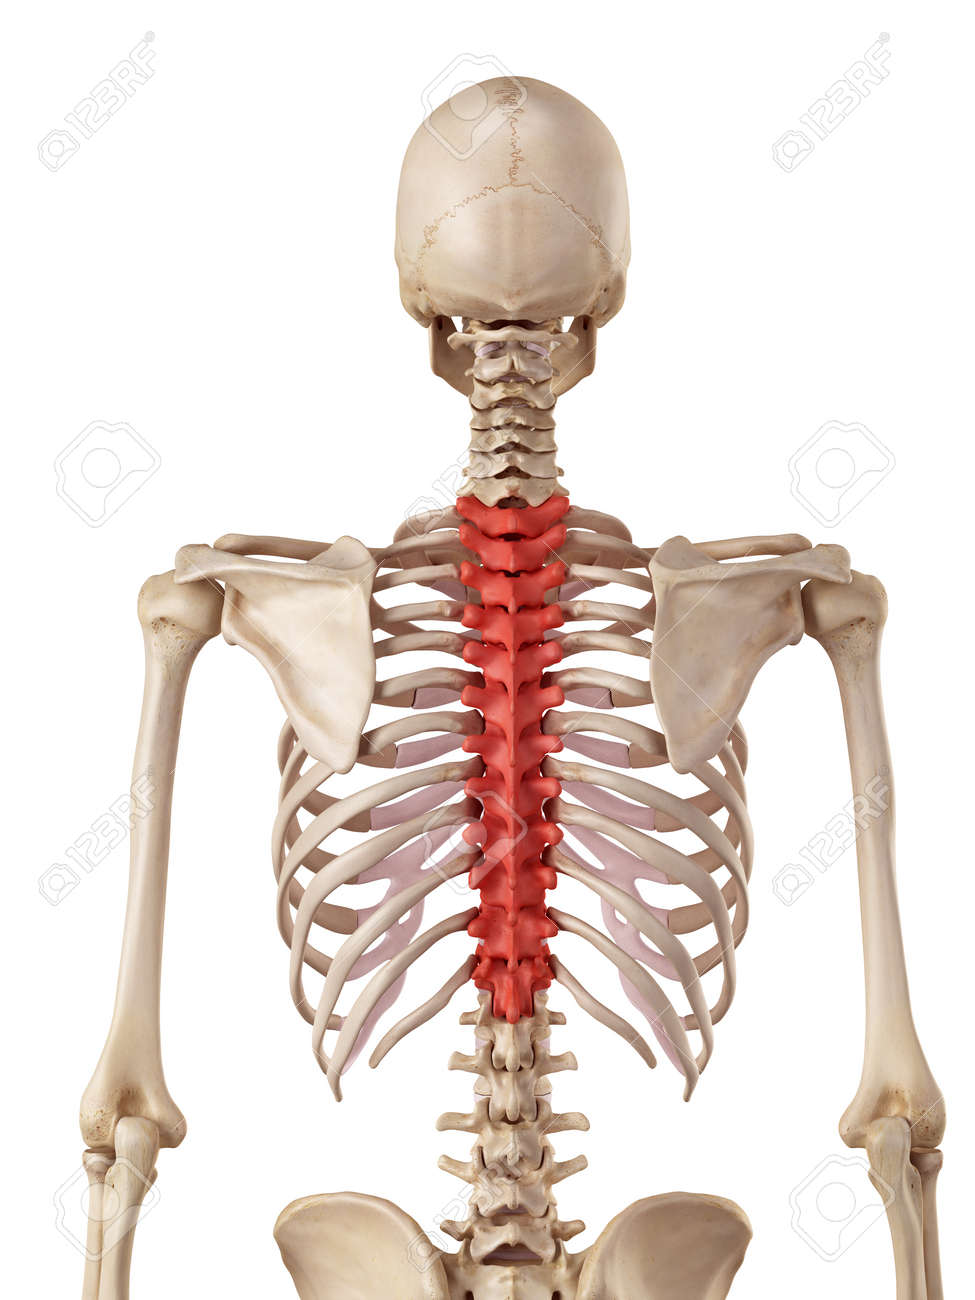 Medical Accurate Illustration Of The Thoracic Spine Stock Photo